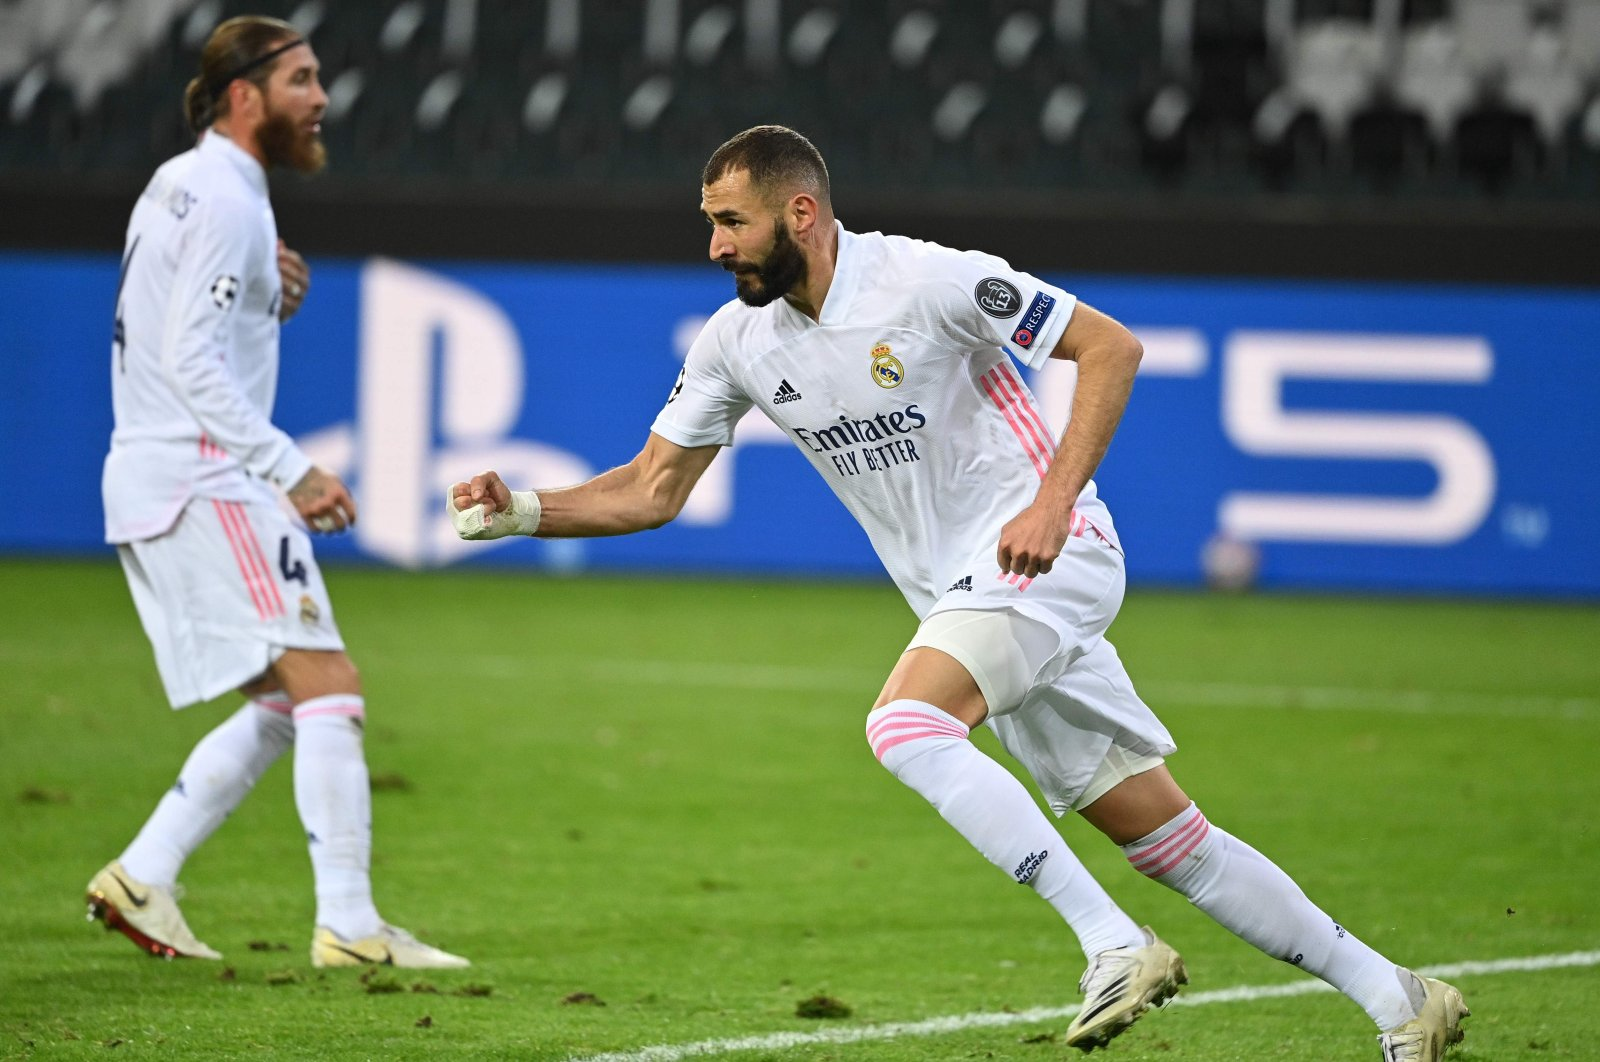 Real Madrid's Karim Benzema celebrates scoring a goal against Borussia Monchengladbach during a UEFA Champions League match, in Monchengladbach, Germany, Oct. 27, 2020. (AFP Photo)